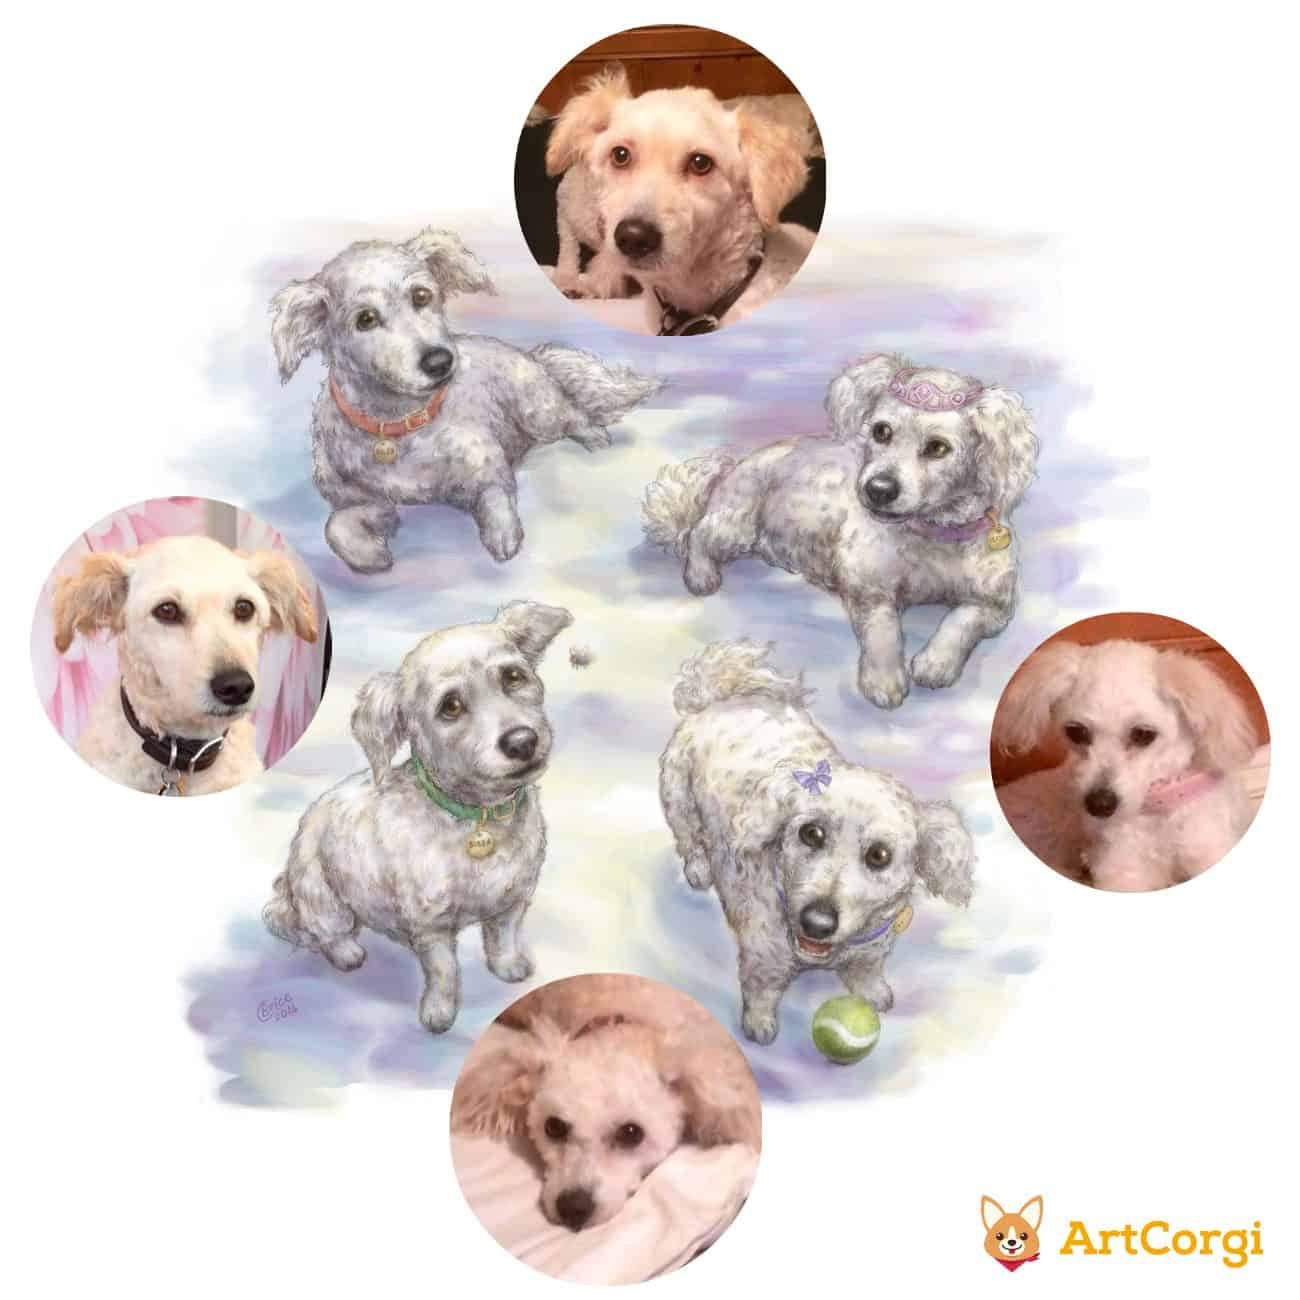 Pet Portrait of Four Dogs by Feralkith Before and After via ArtCorgi